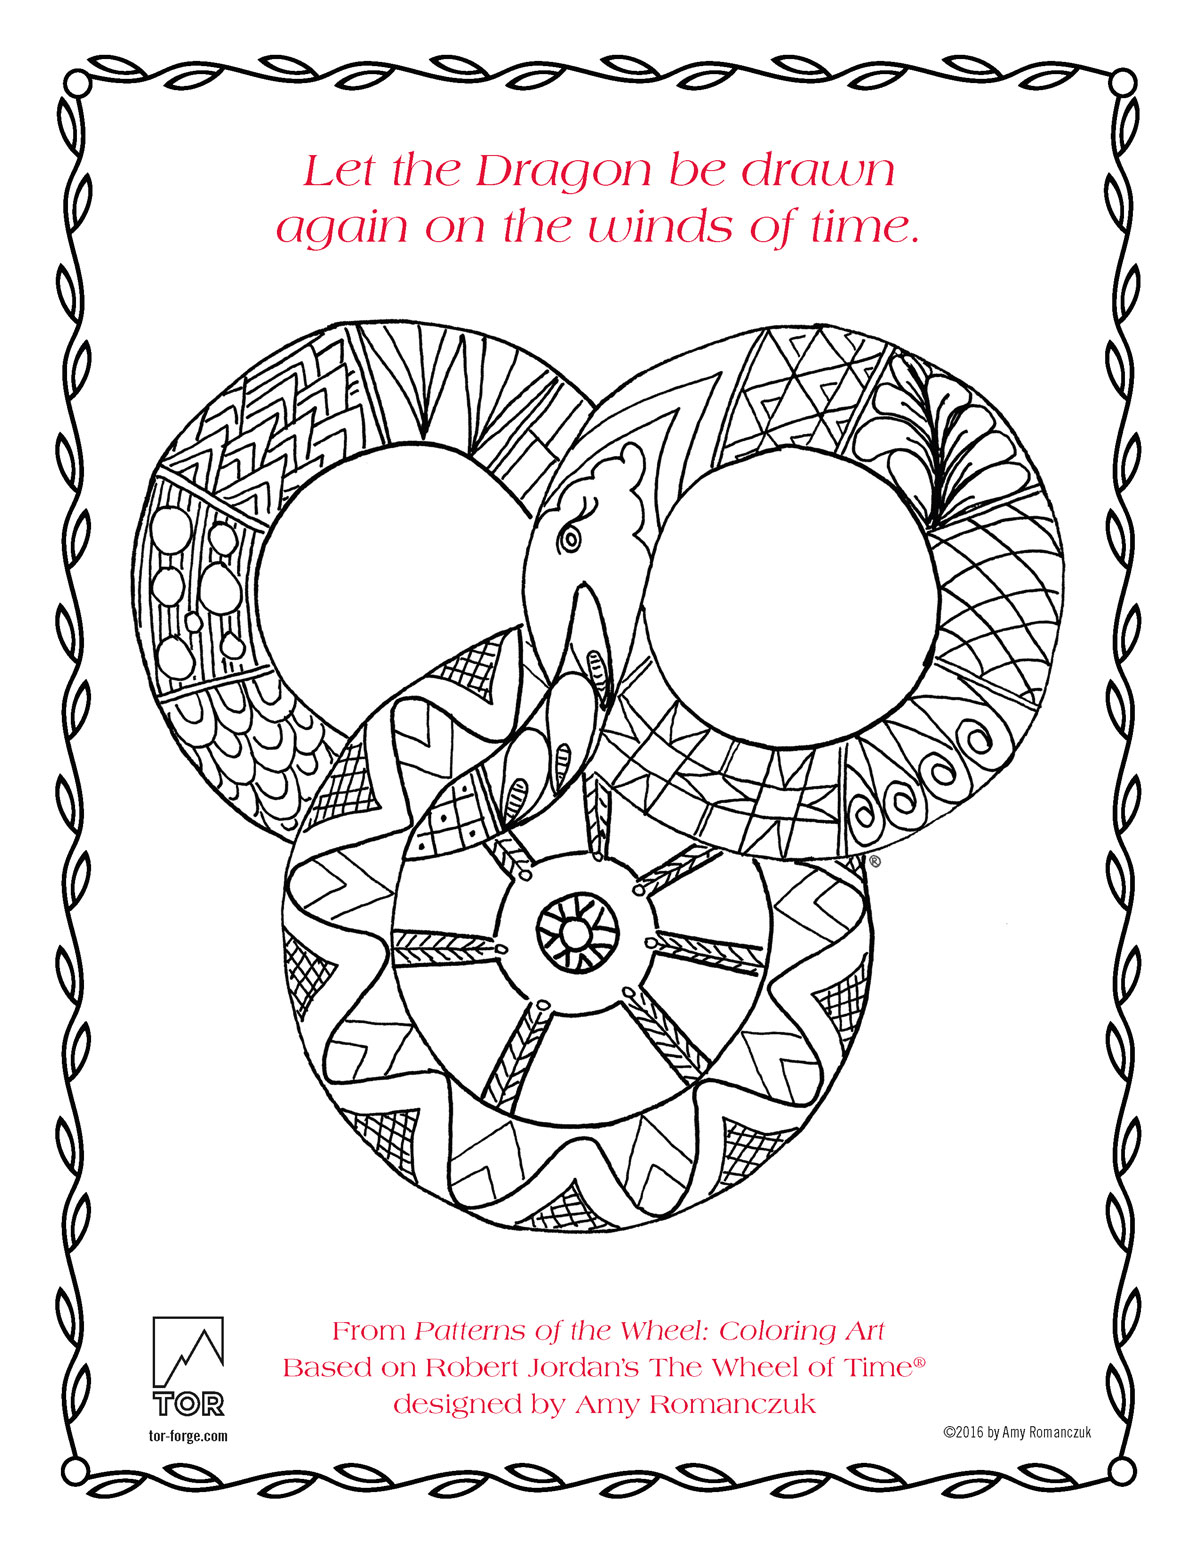 Patterns of the Wheel coloring art page